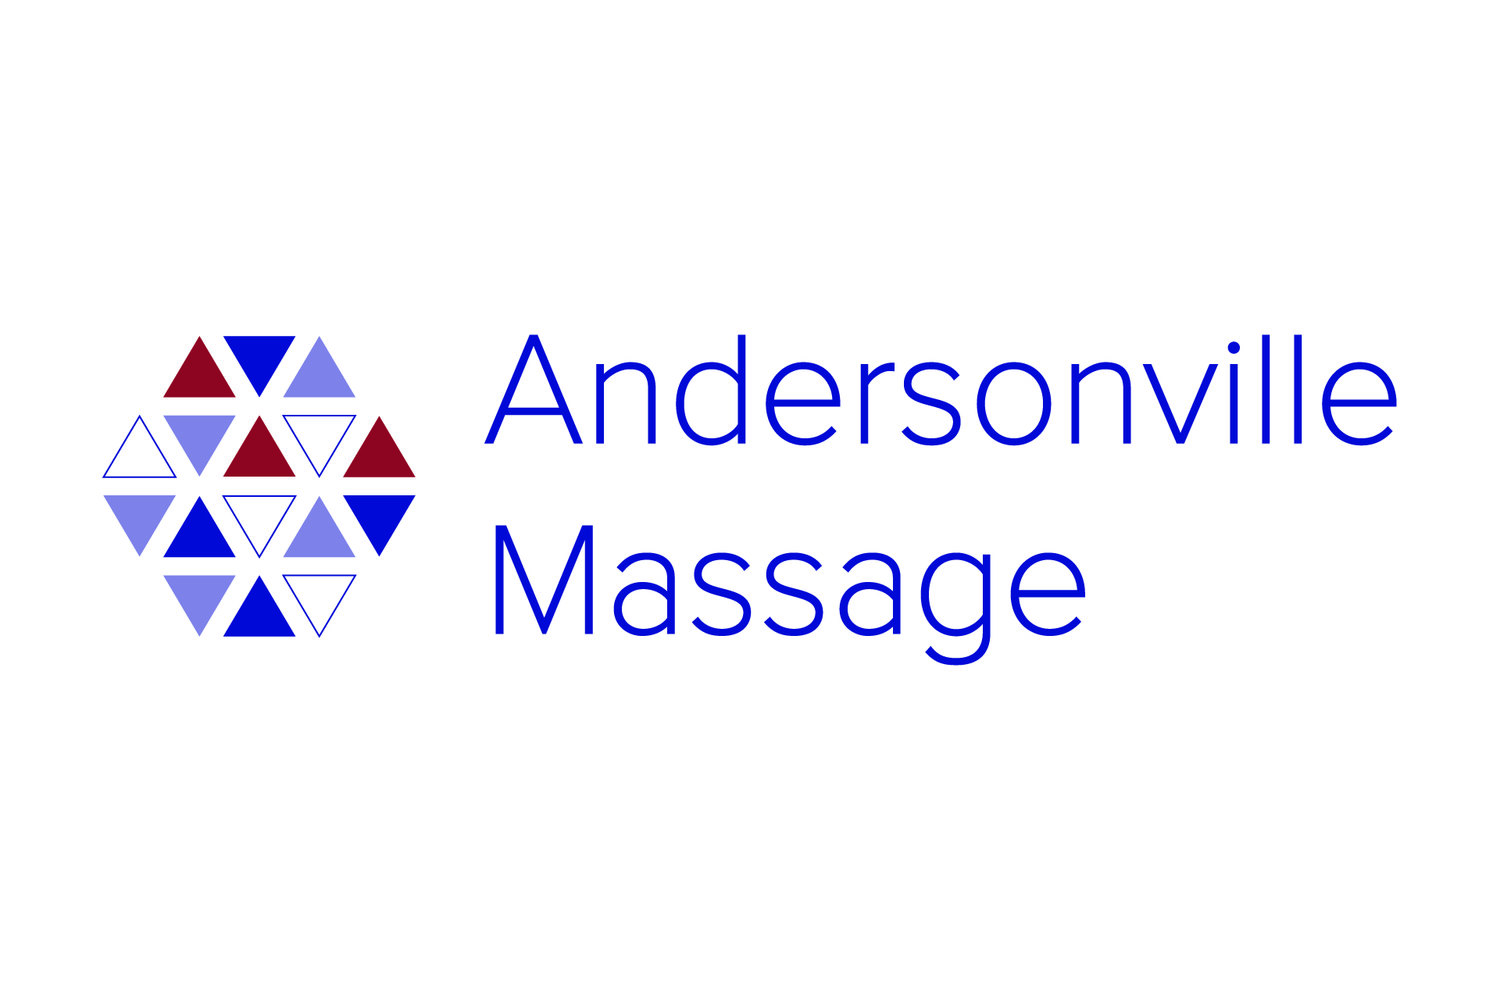 Andersonville Massage